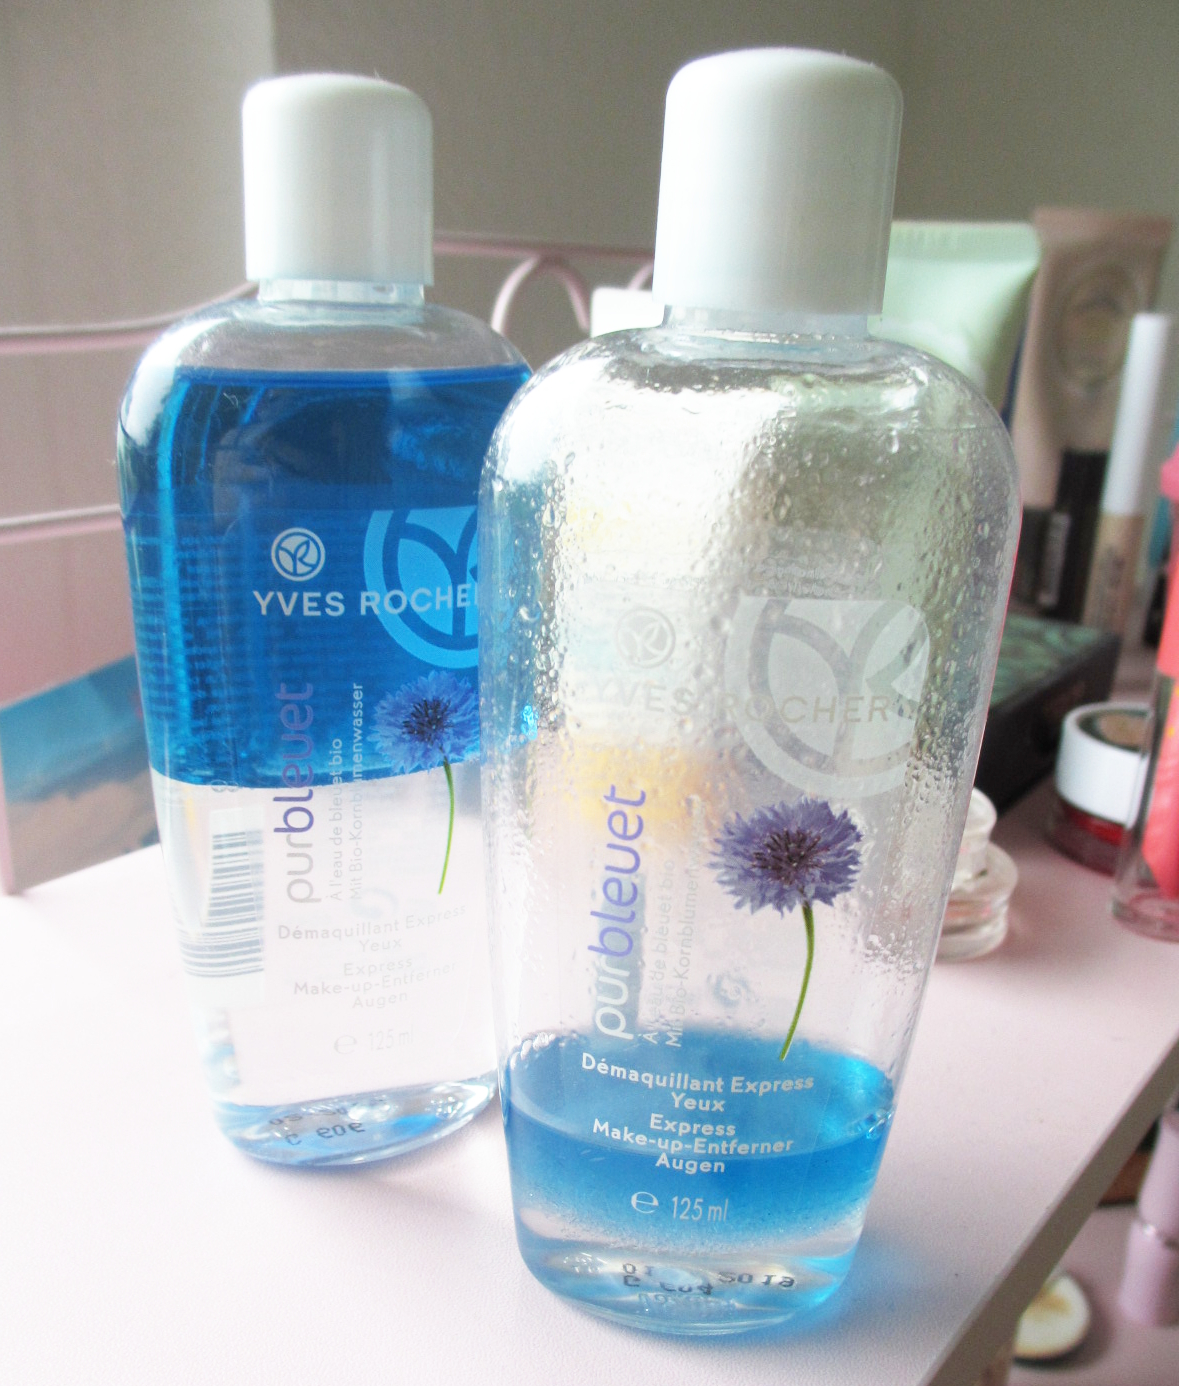 Blubblbubbl Twins Yves Rocher Express Eye Make Up Remover